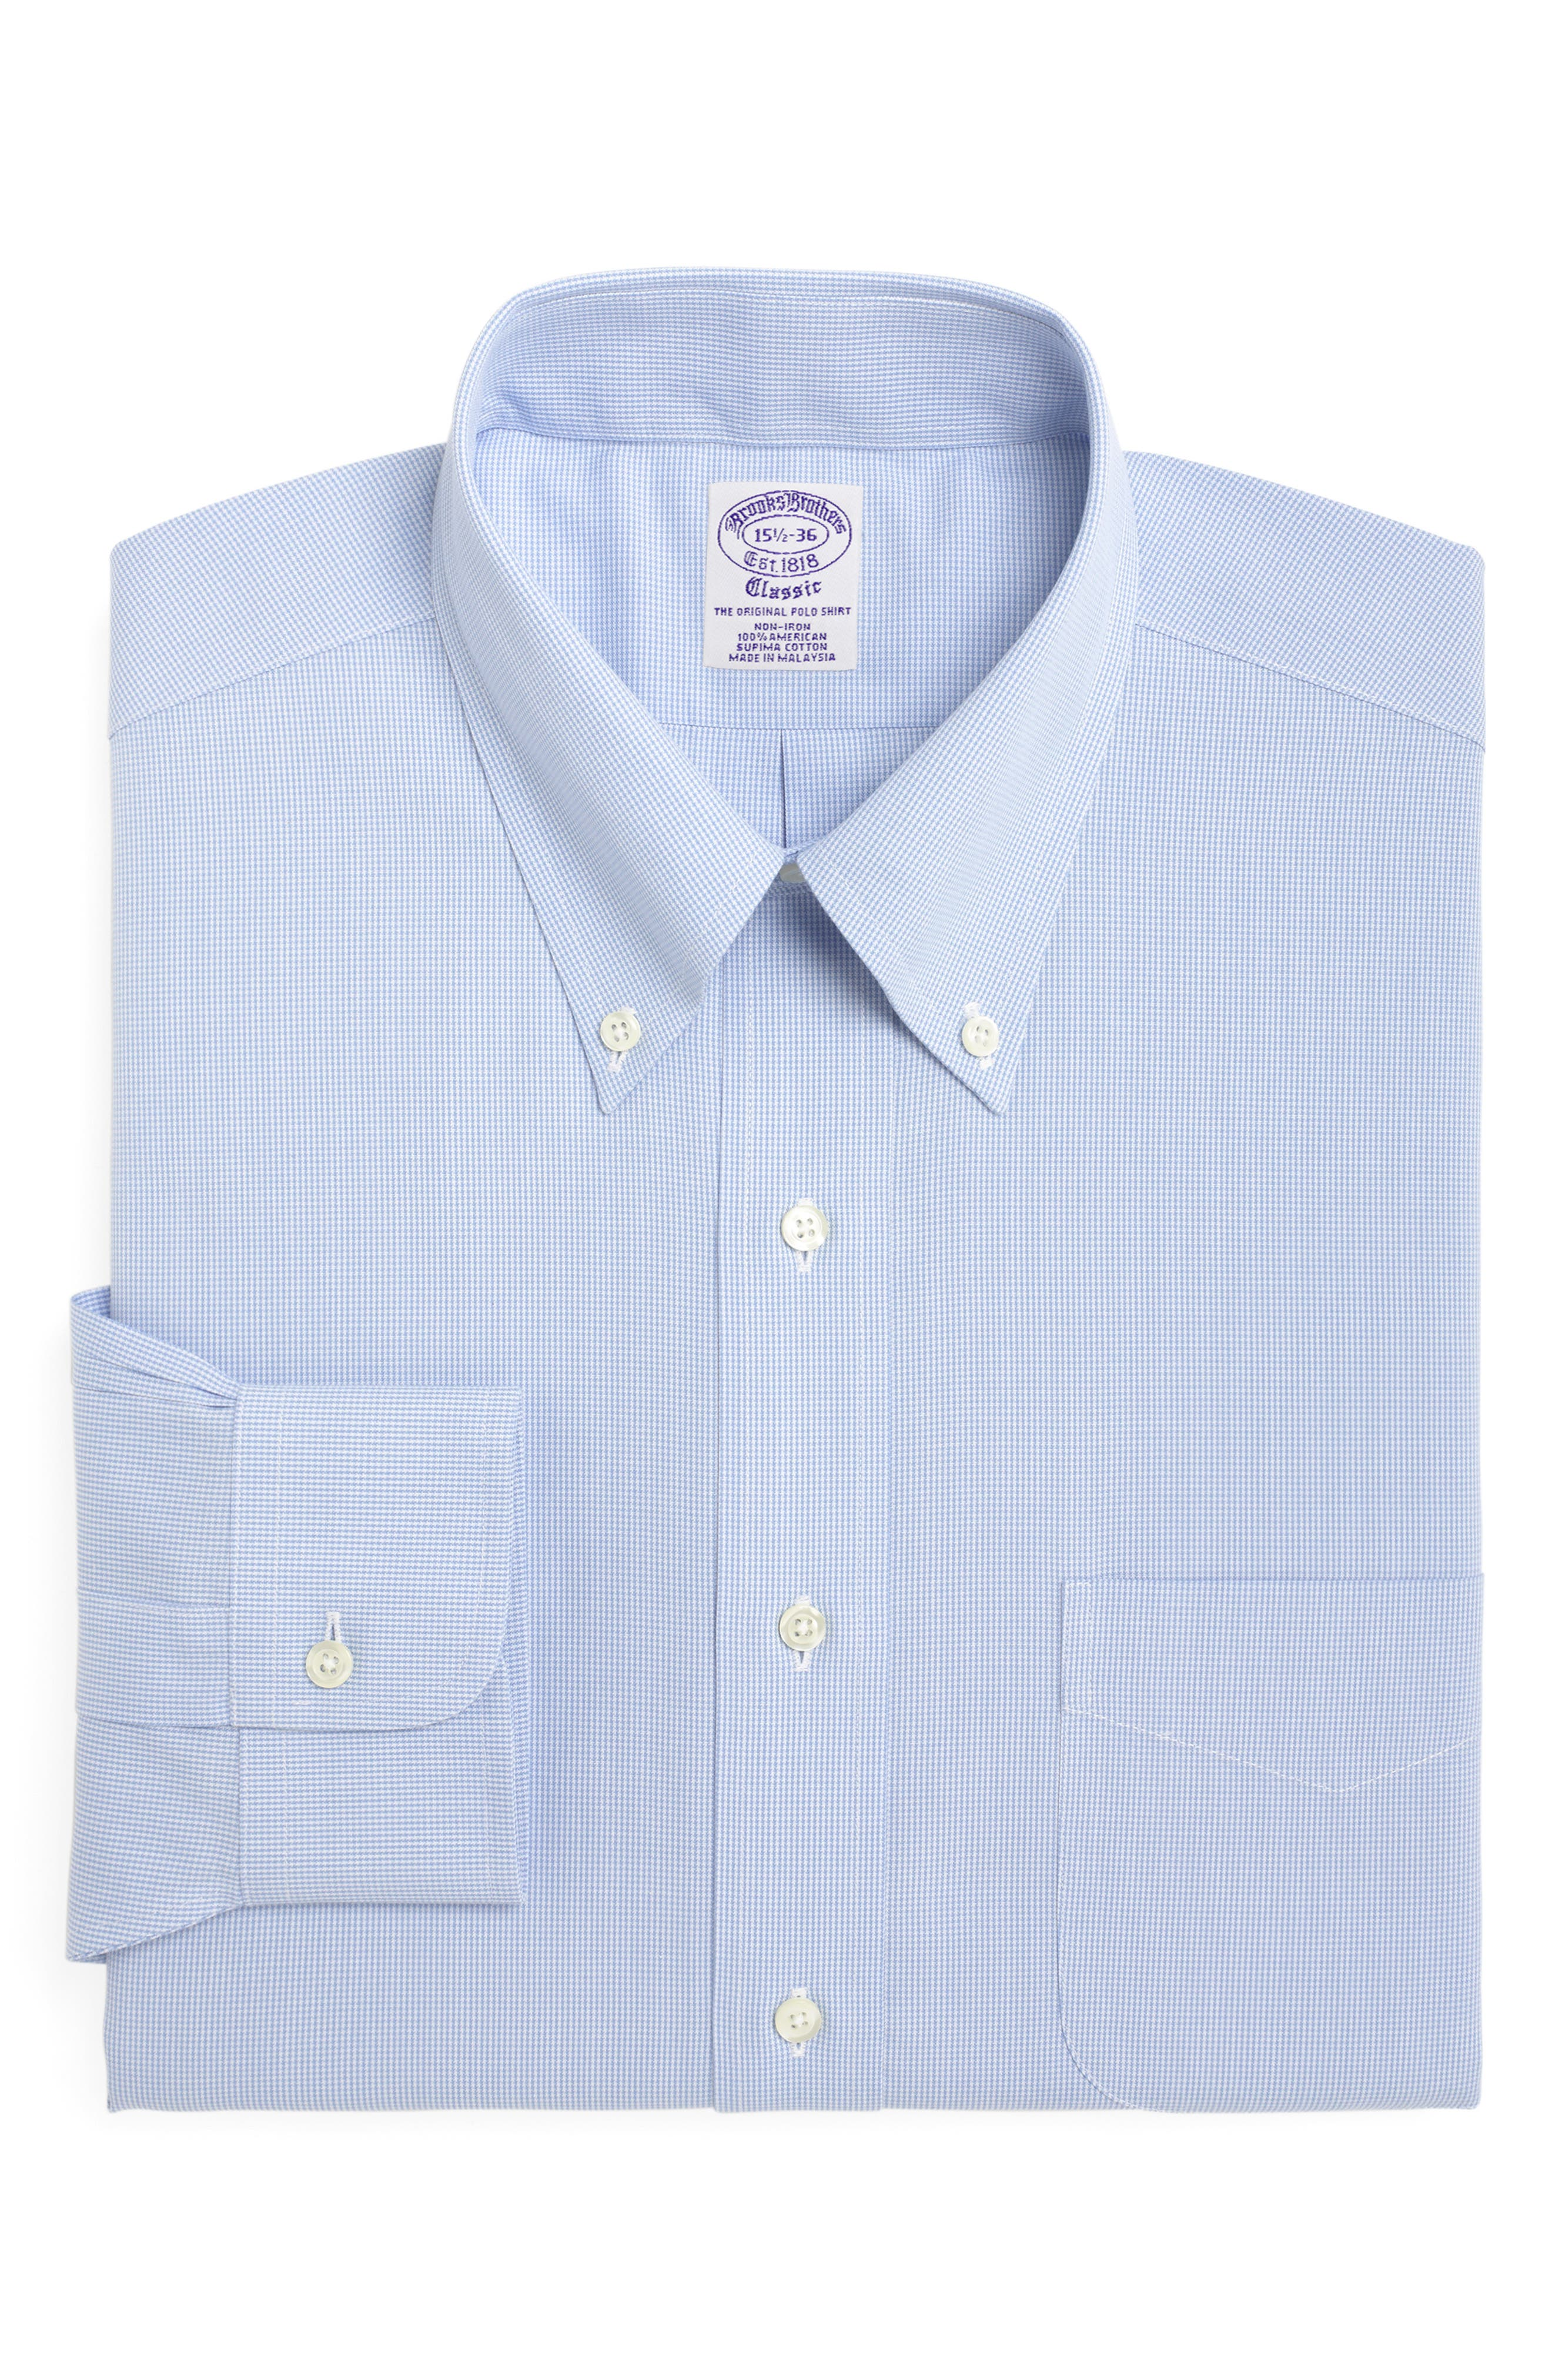 Classic Fit Houndstooth Dress Shirt,                         Main,                         color, LIGHT/ PASTEL BLUE